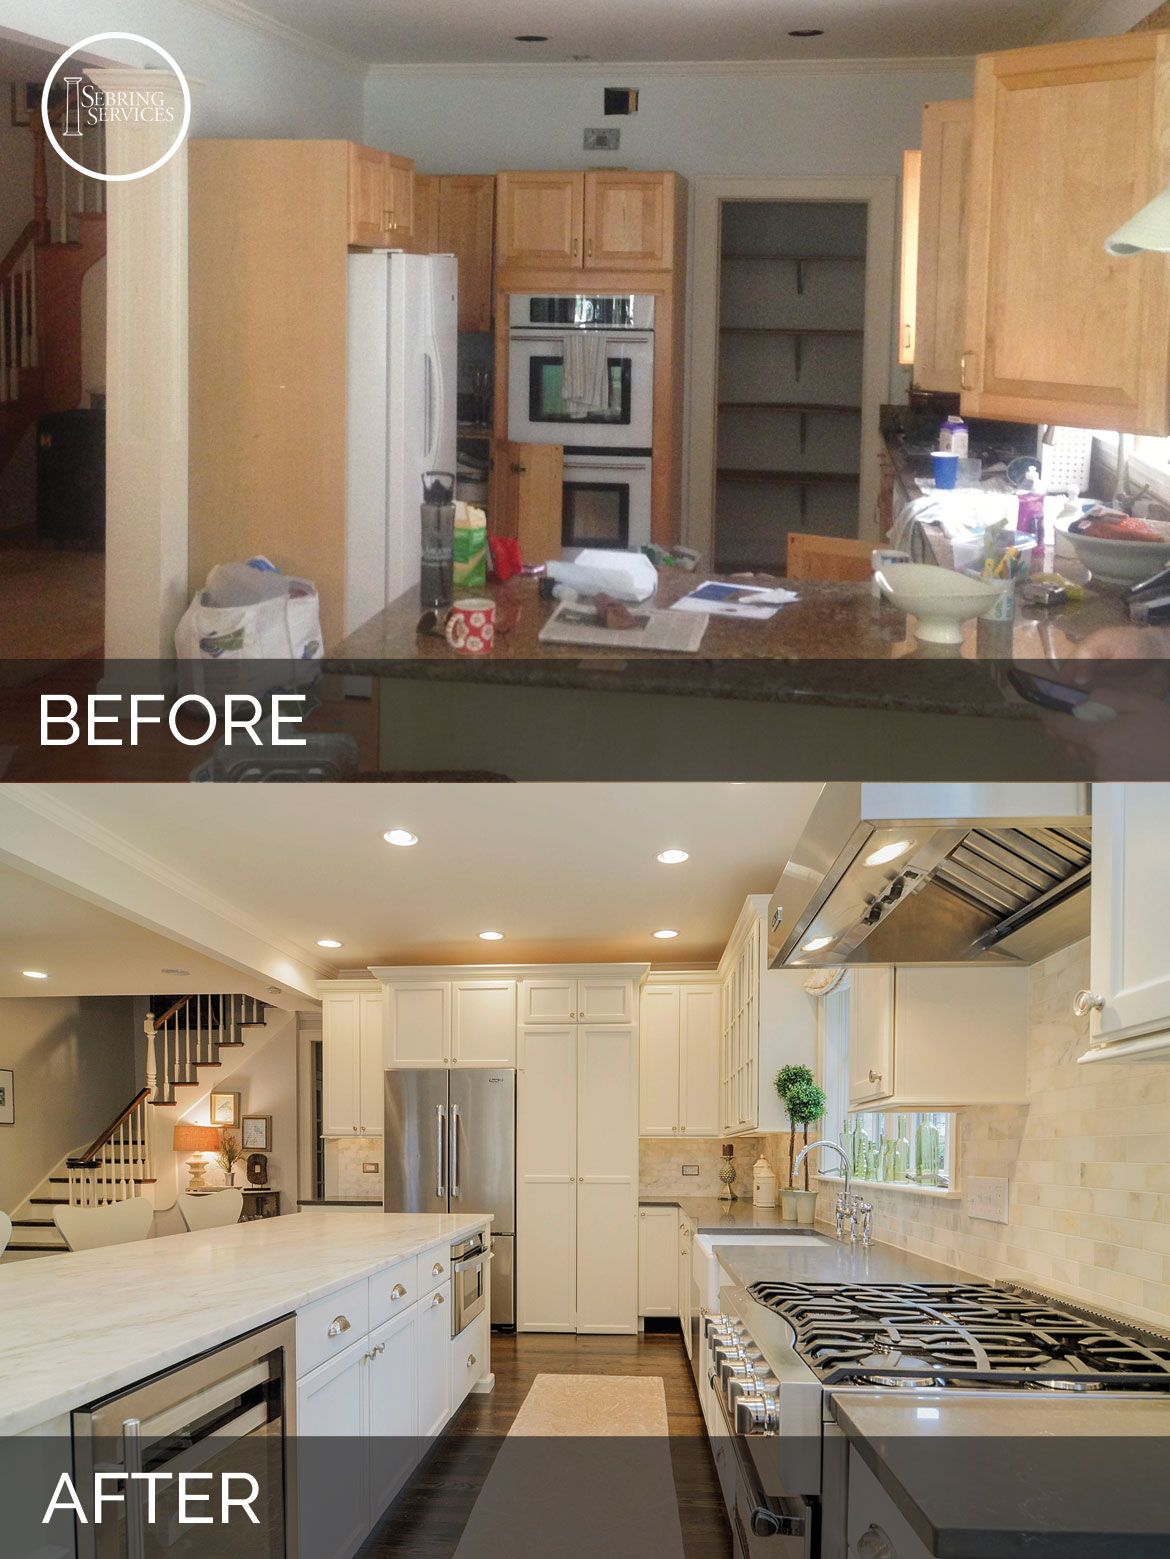 Ben ellen 39 s kitchen before after pictures kitchens for Kitchen remodel ideas before and after